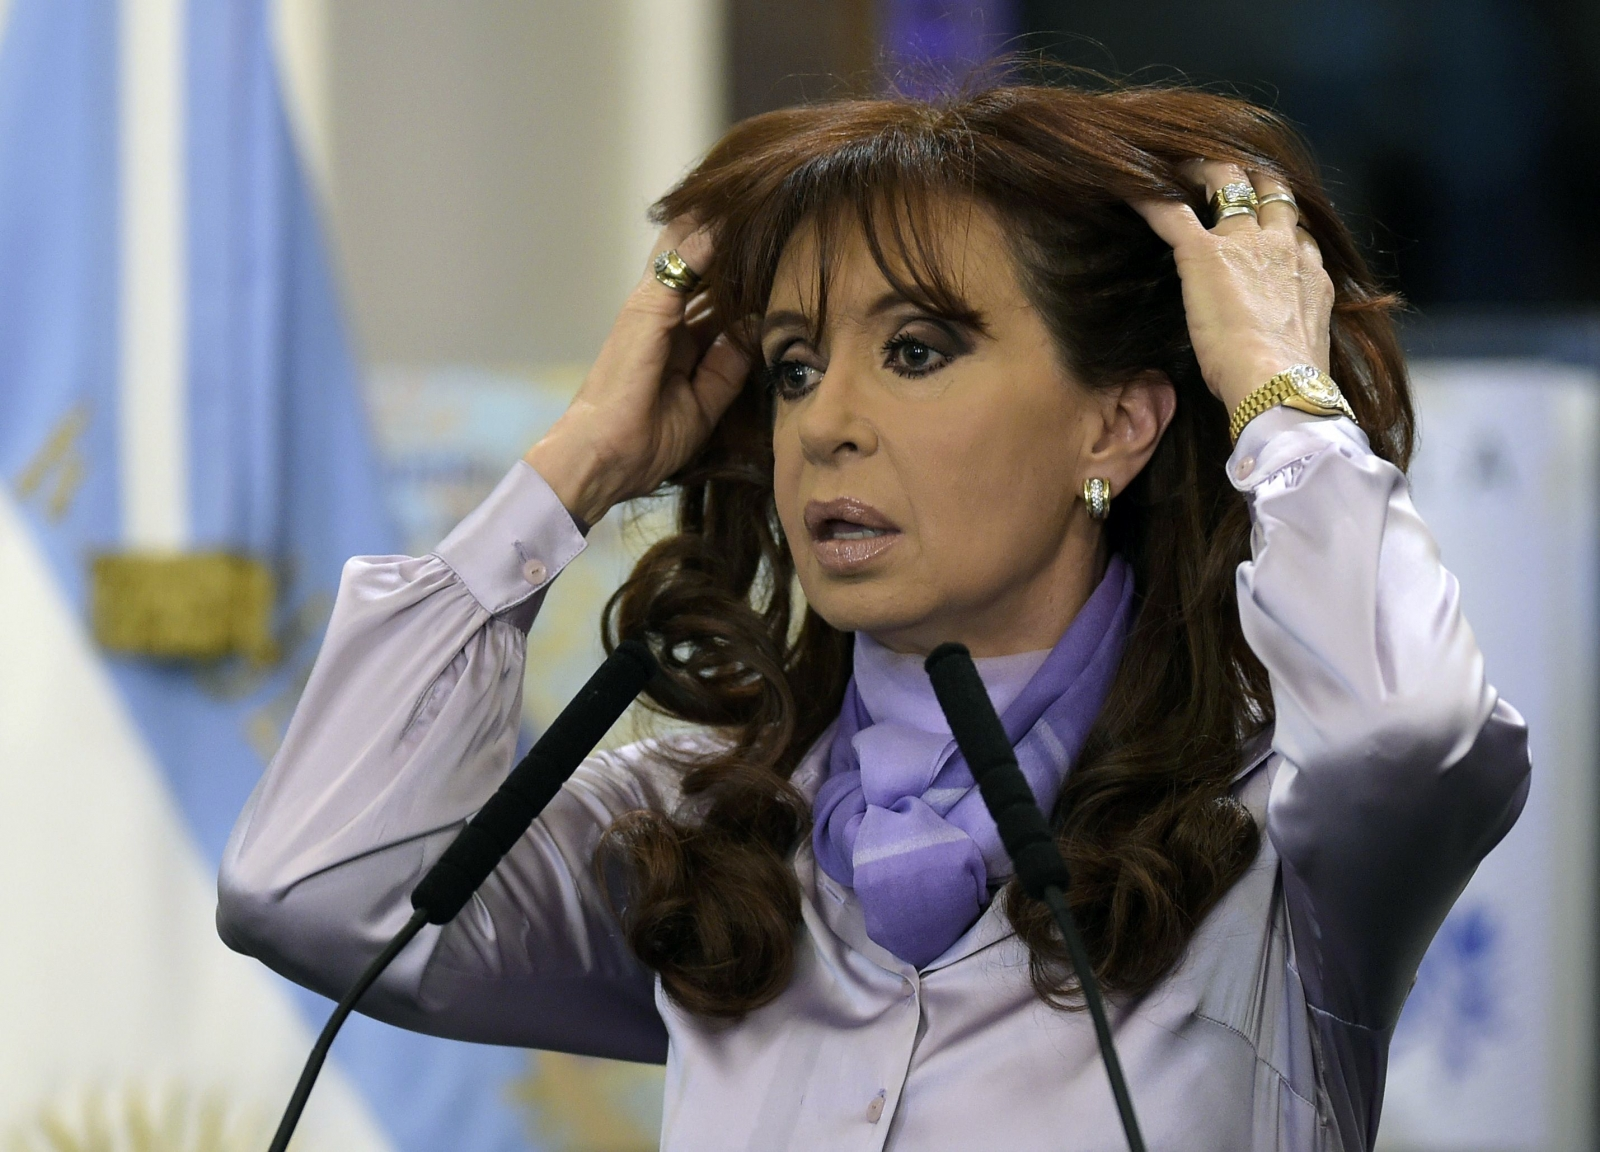 Argentina presidenté Cristina Kirchner thinks the United State could assassinate her and topple nation